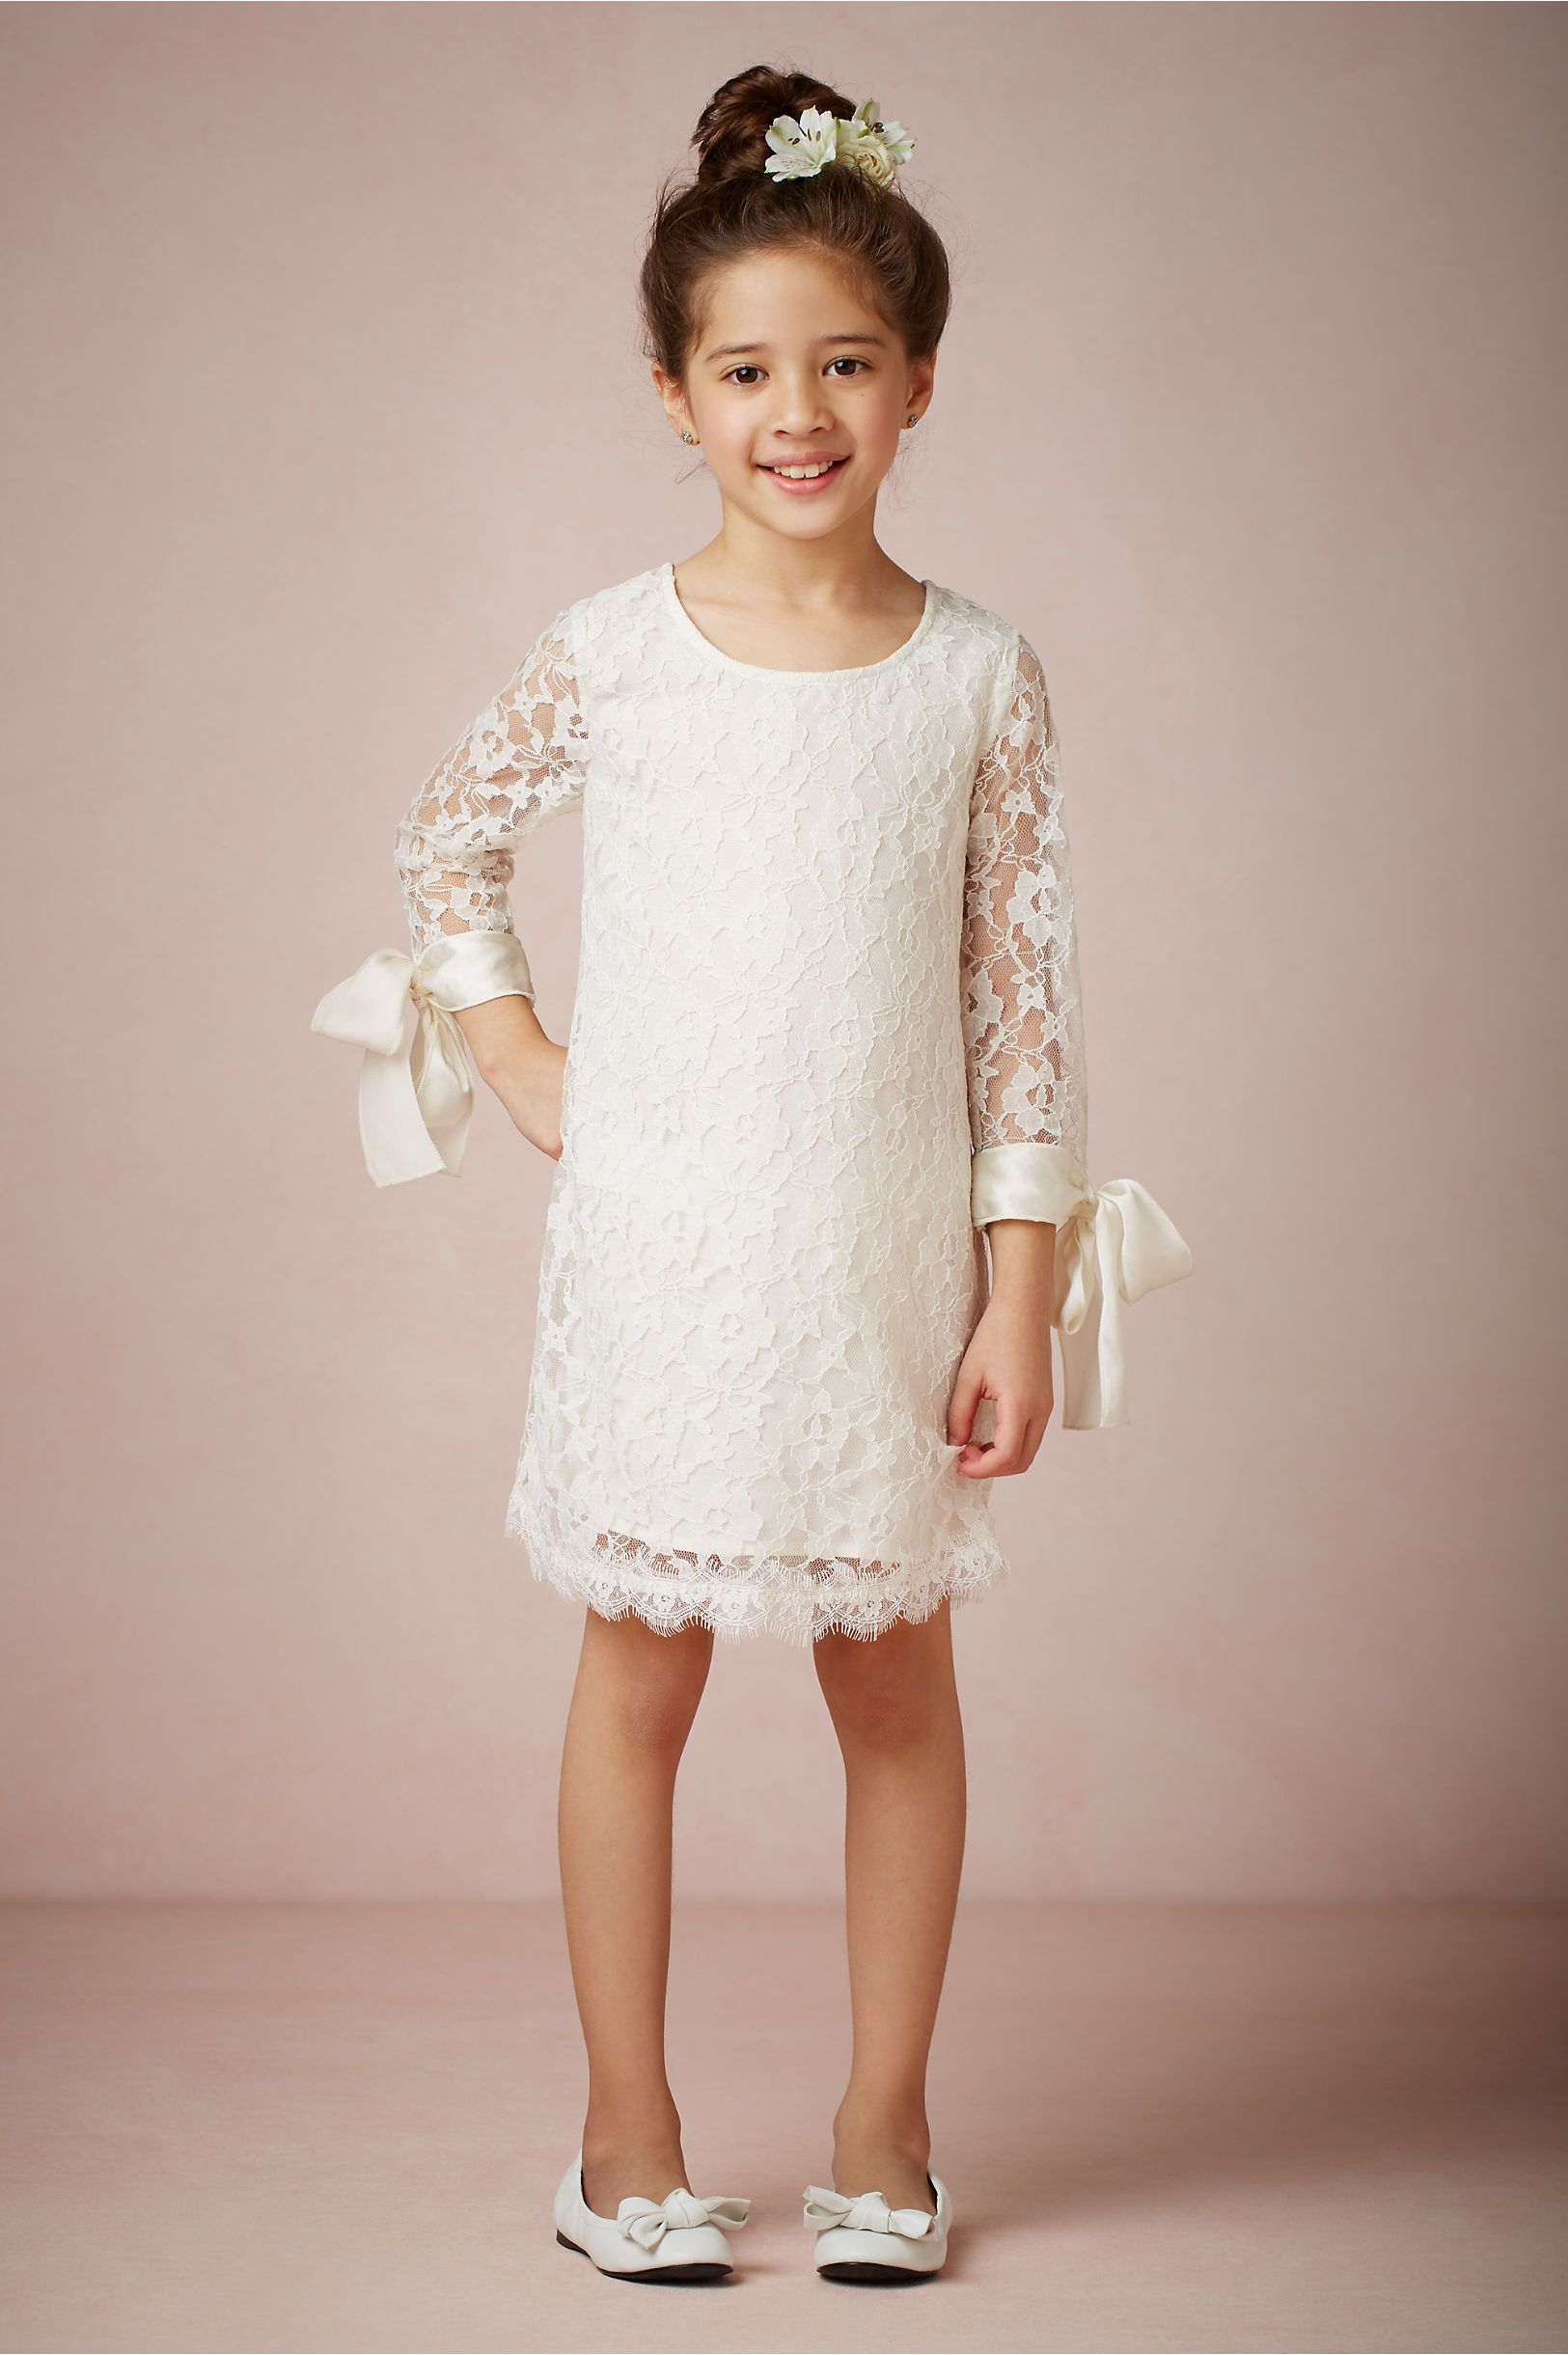 Lyla Dress from BHLDN - Absolutely adorable! The ribbons are so much ...